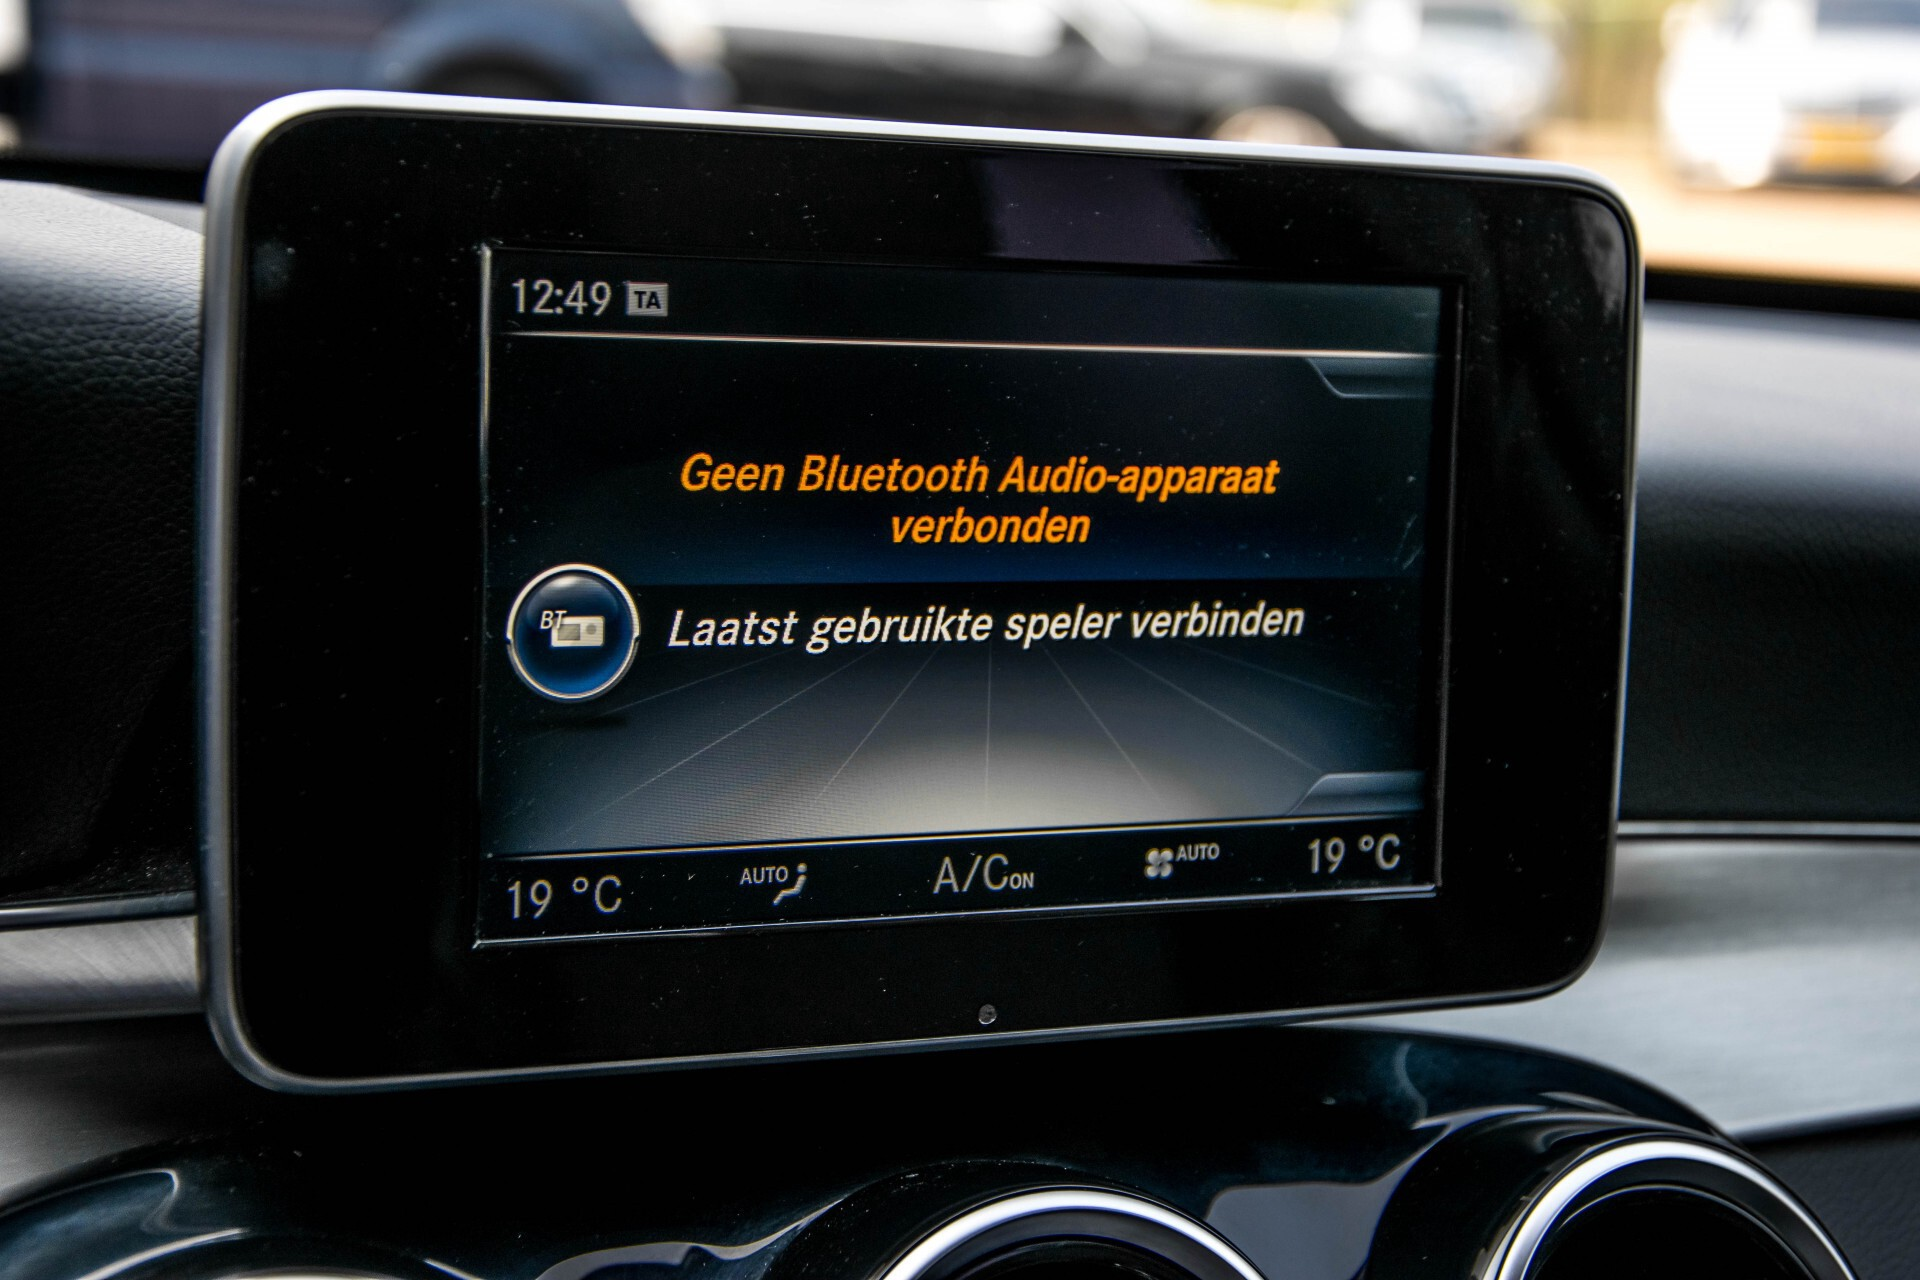 Mercedes-Benz C-Klasse Estate 180 Avantgarde LED/Navi/Privacyglas/Pts/Aut-koffer Aut7 Foto 20